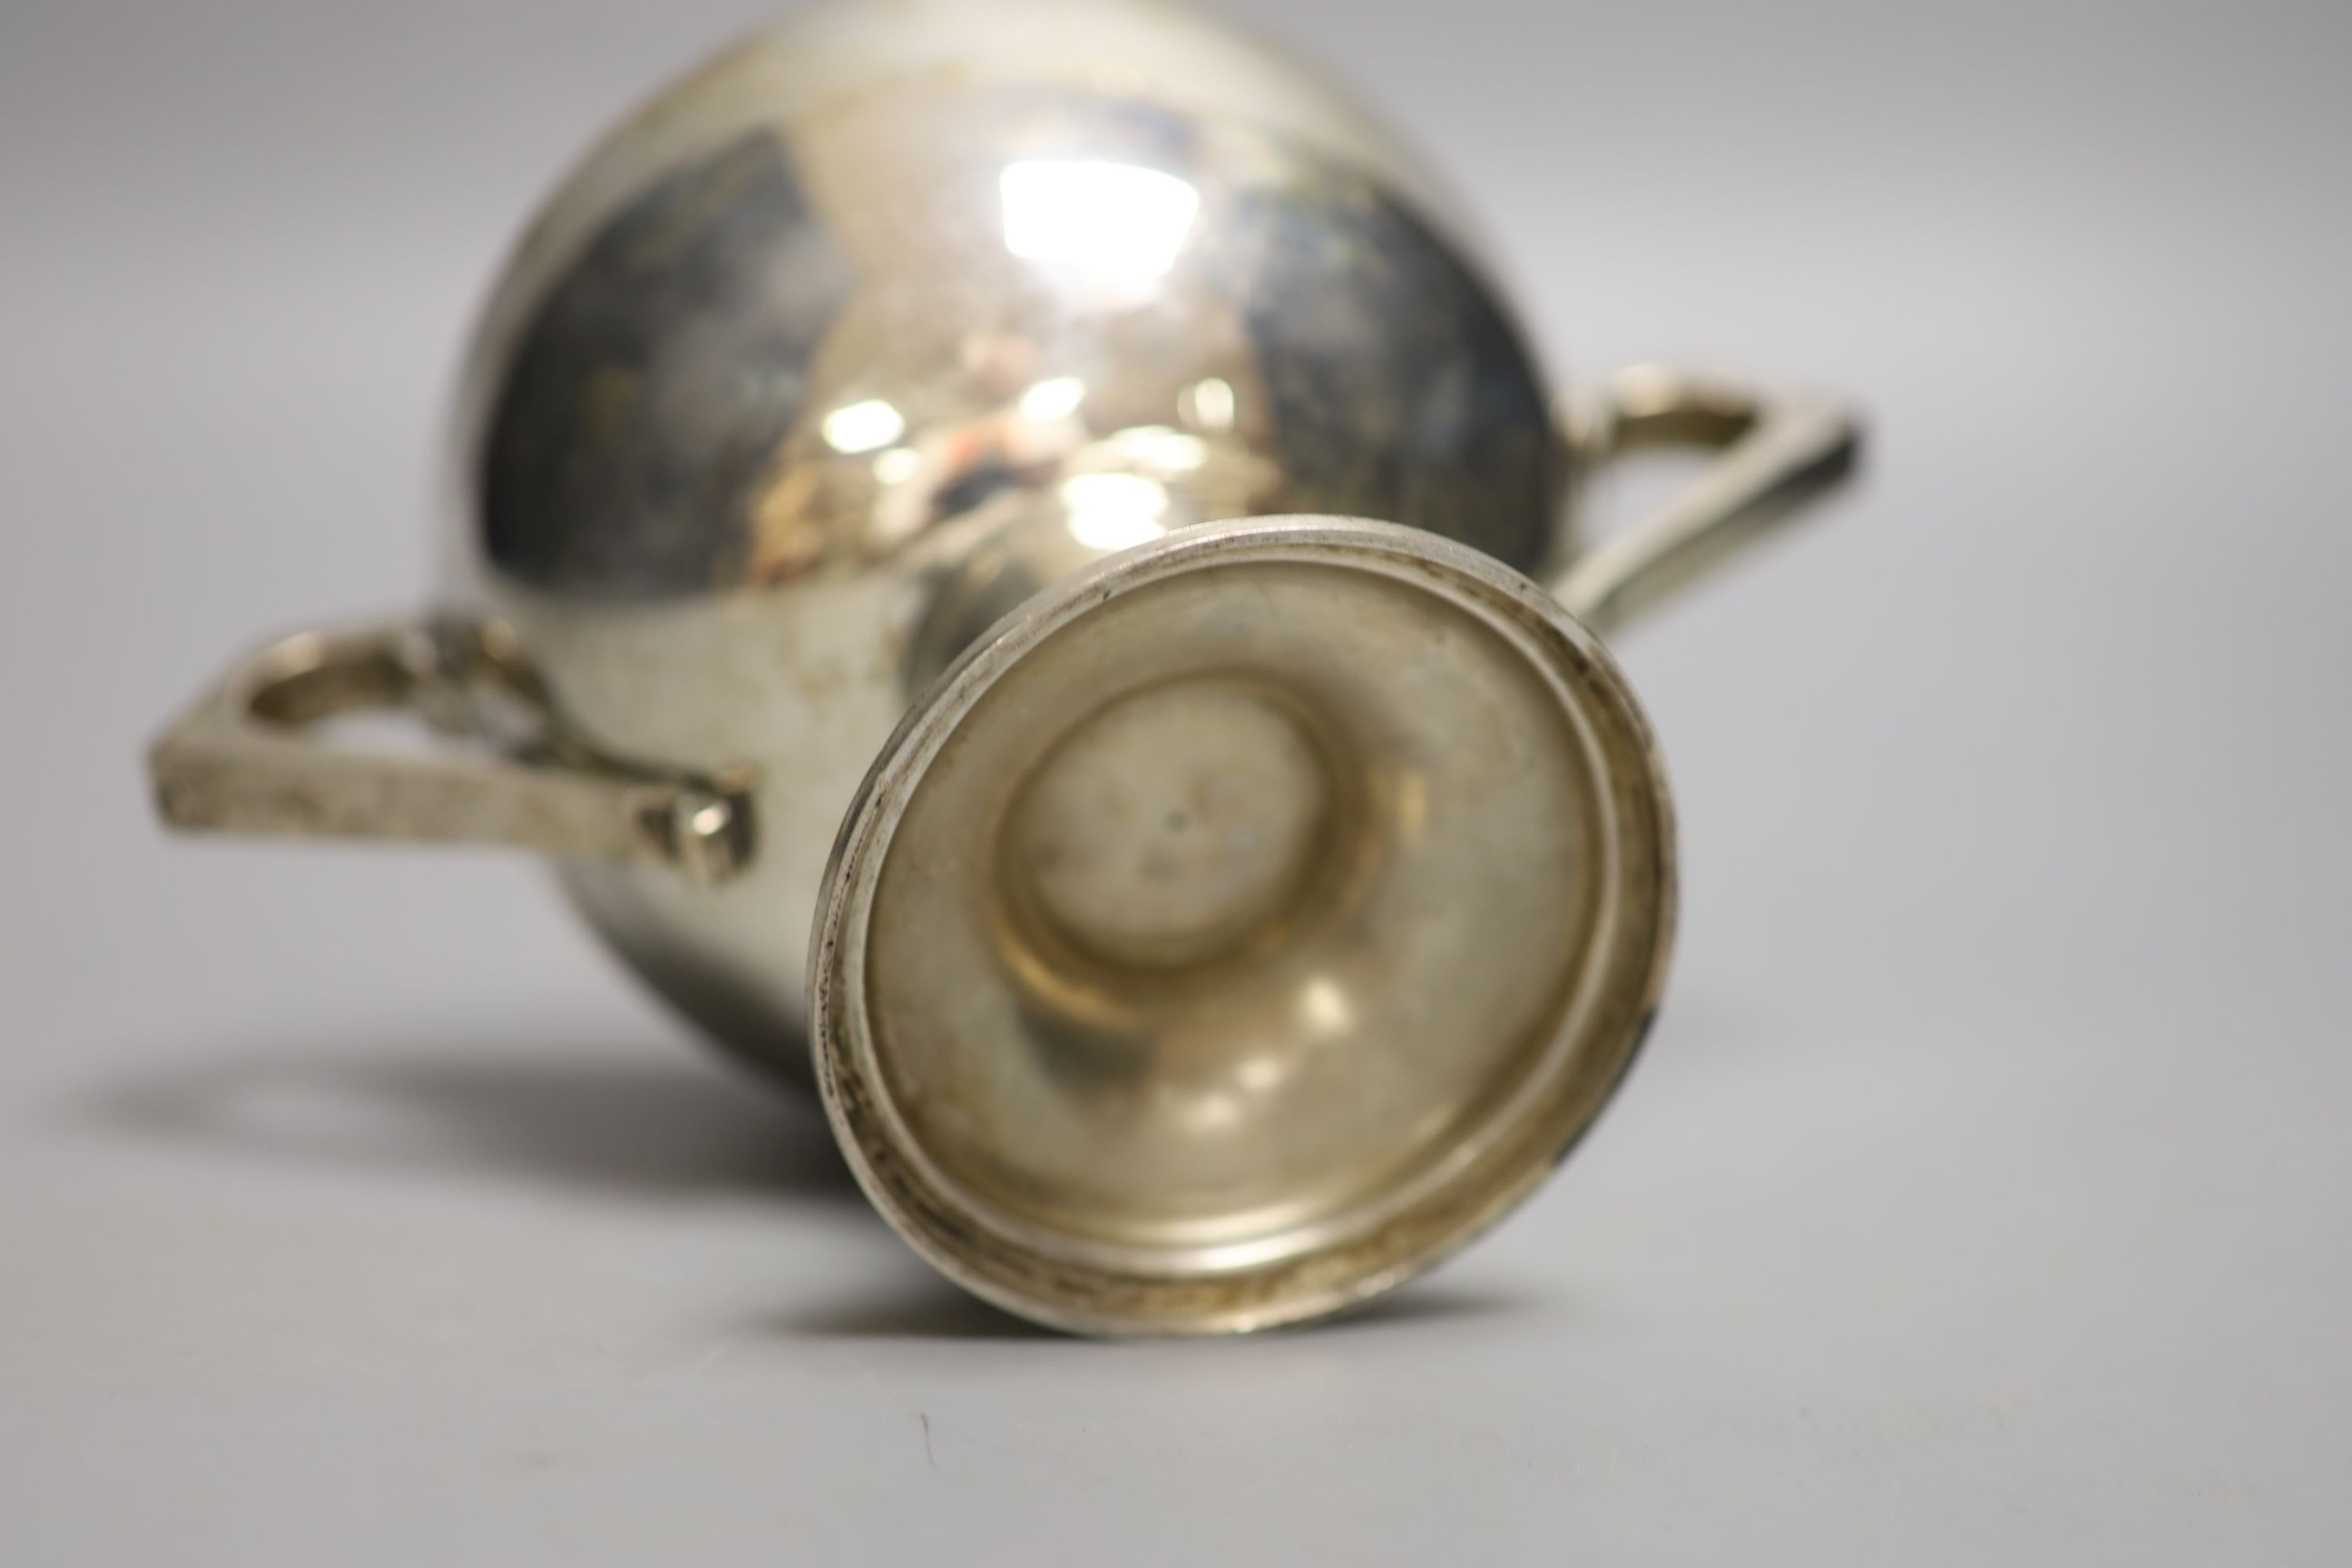 An Anglo-Indian silver two-handled pedestal rose bowl, marked C & K (Cooke & Kelvey), snake and SIL, - Image 3 of 3